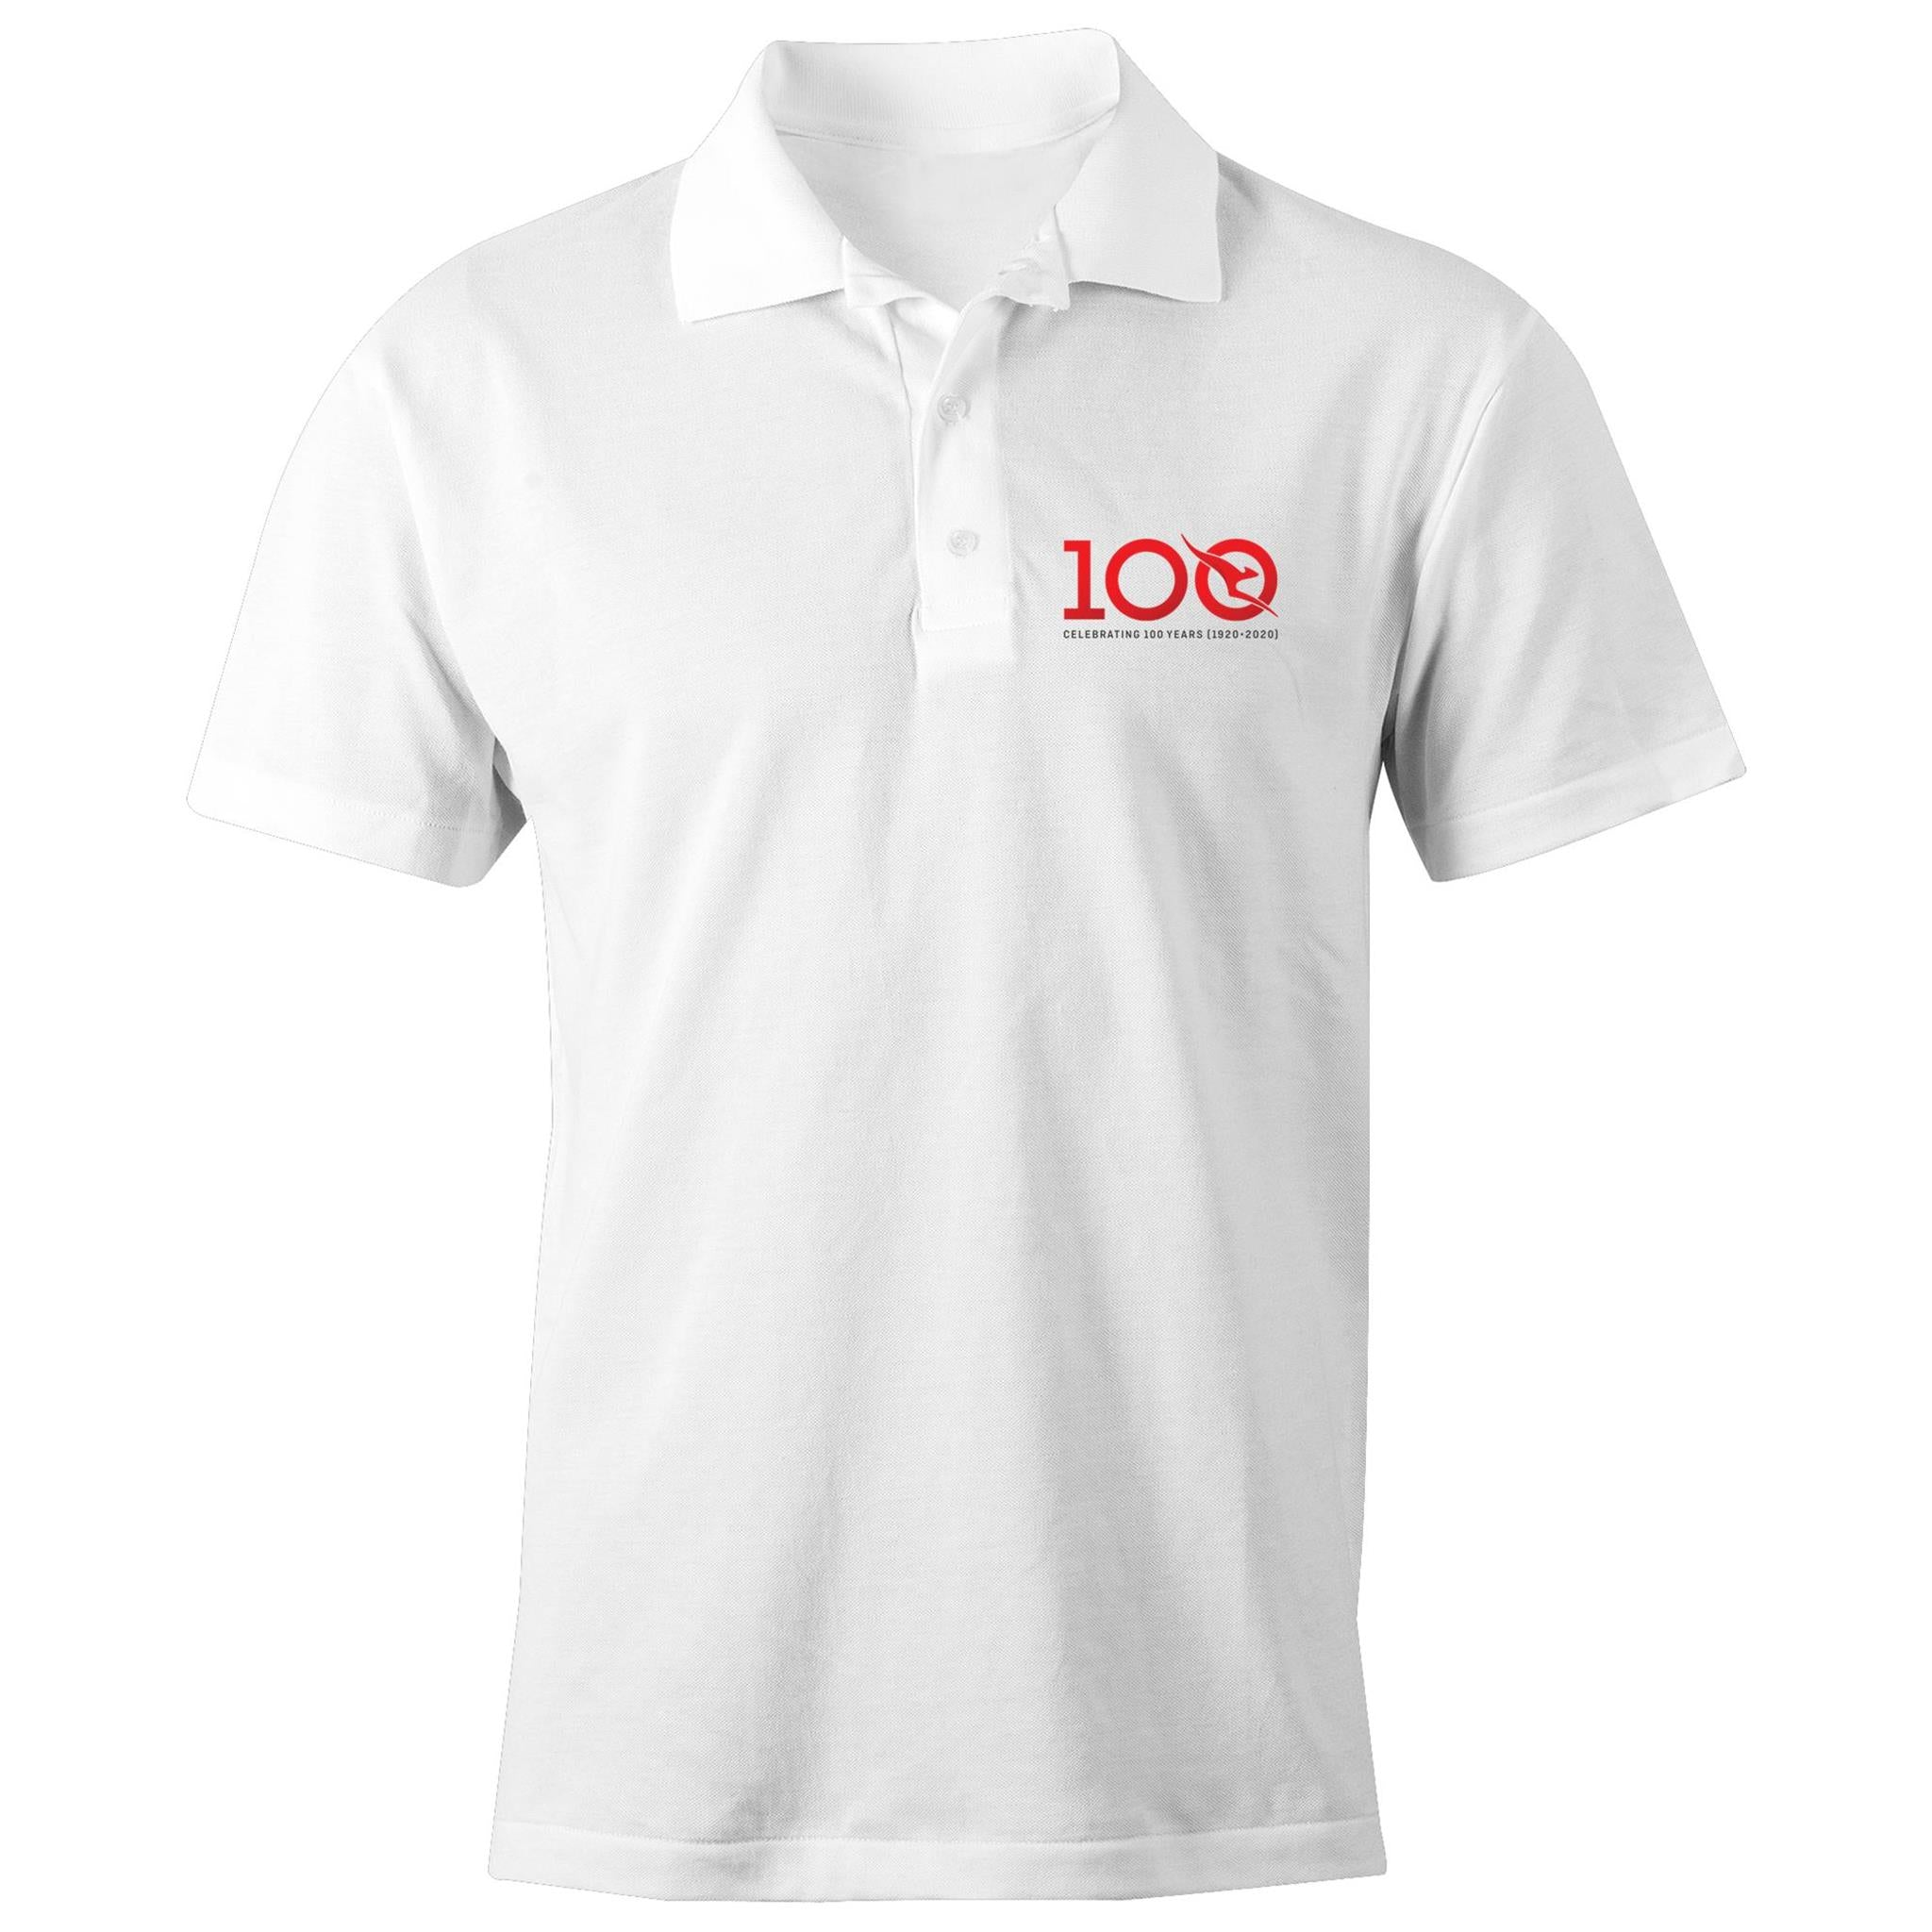 QANTAS 100 Years - AS Colour Chad - S/S Polo Shirt